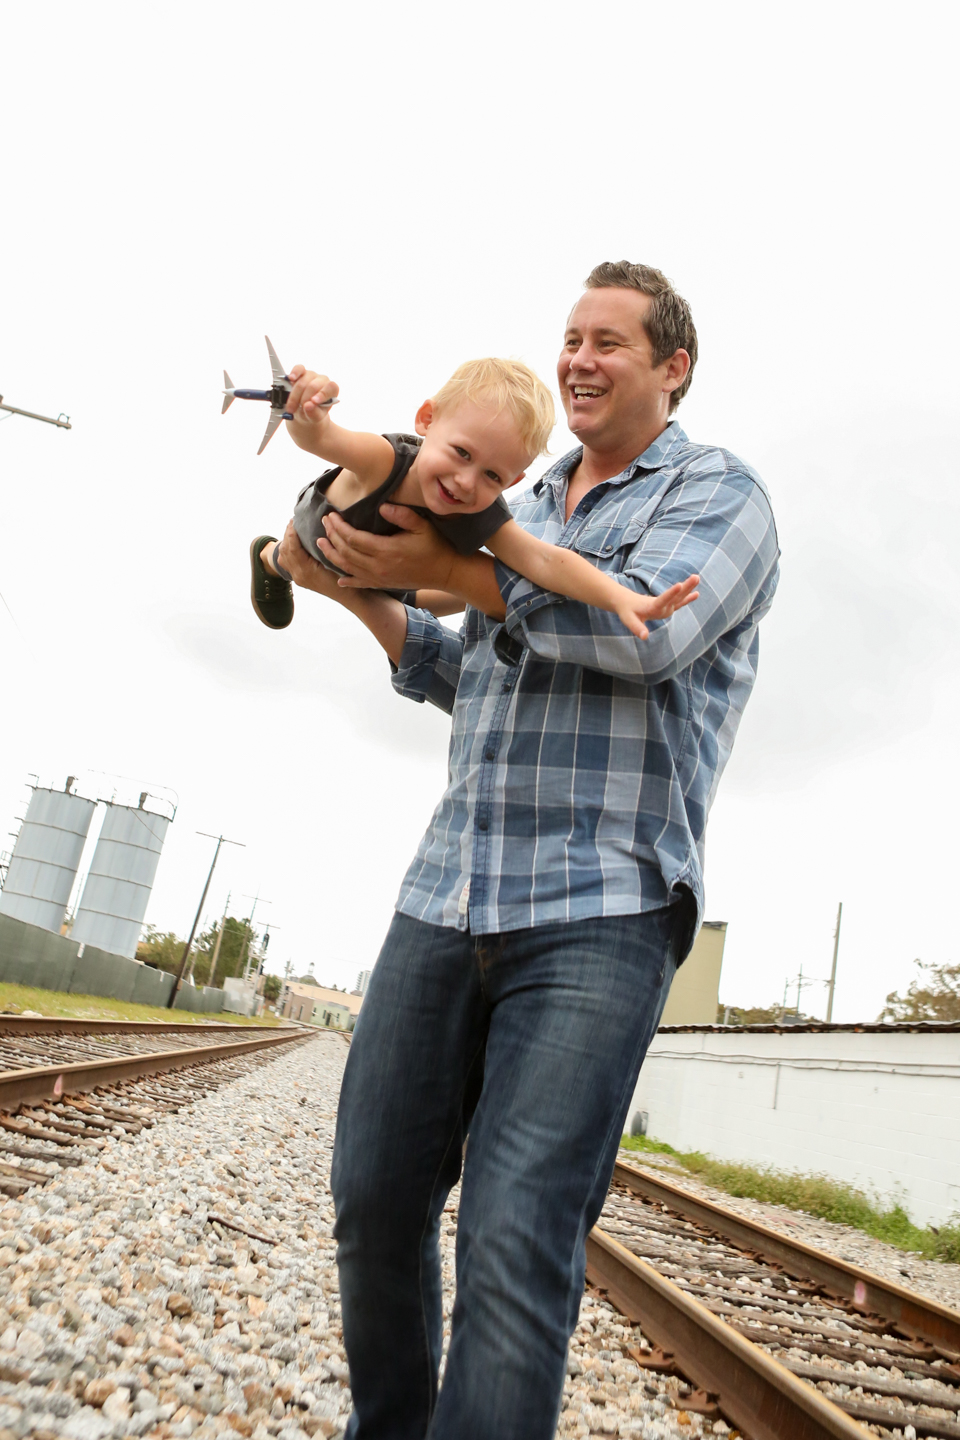 www.livehappystudio.com-family-photographer-orlando-fun-candid-portrait-airplane-boy-kid-dad-6.jpg